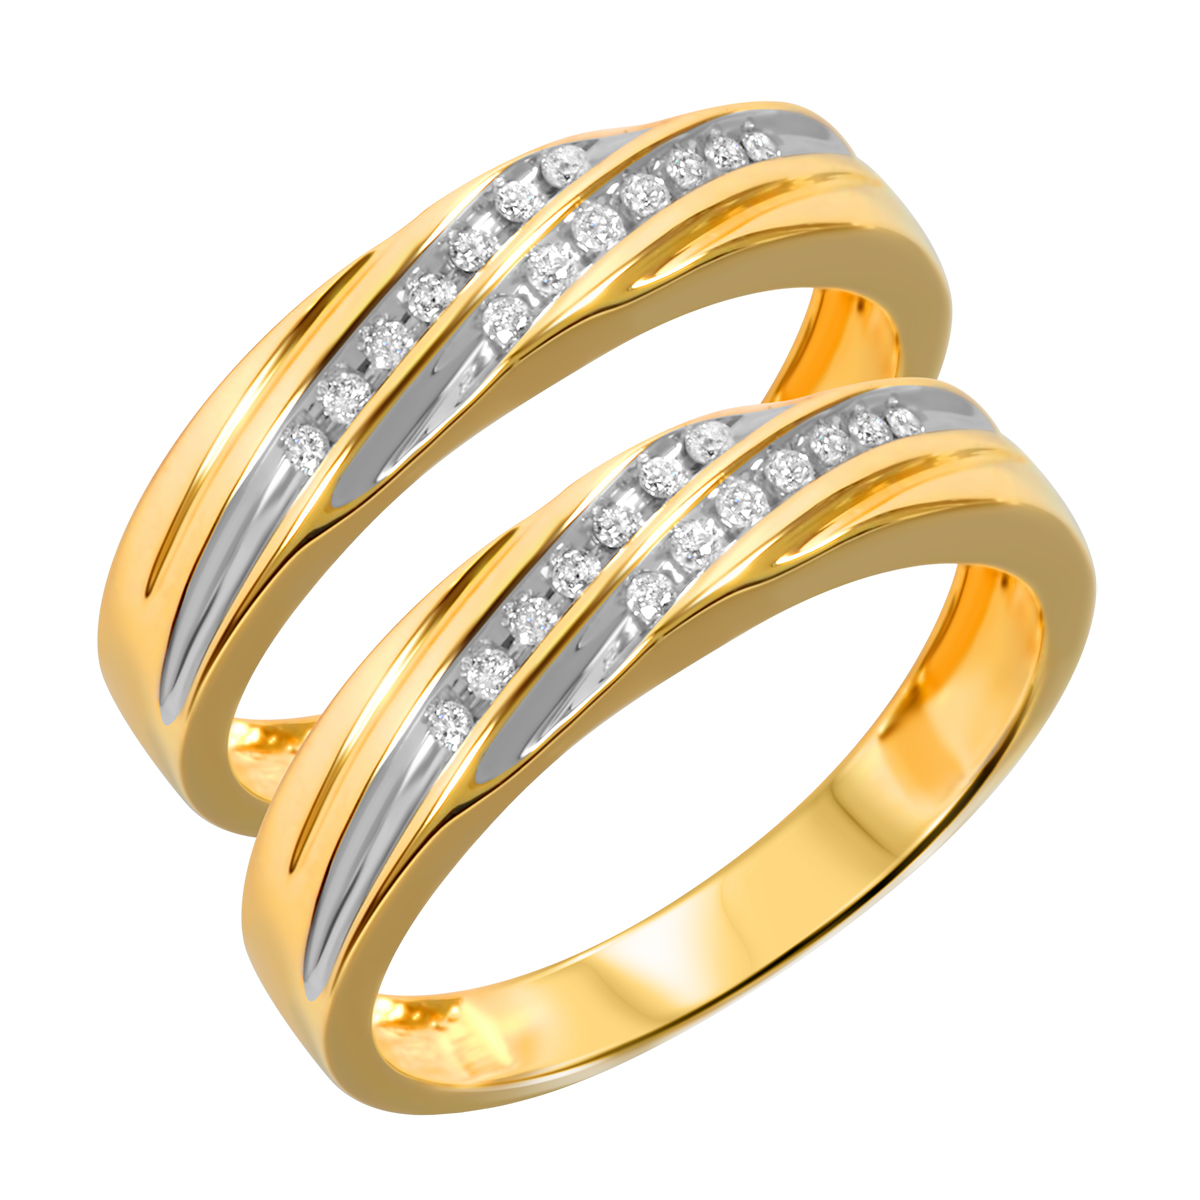 1/8 CT. T.W. Round Cut Ladies Same Sex Wedding Band Set 10K Yellow Gold- Size 8